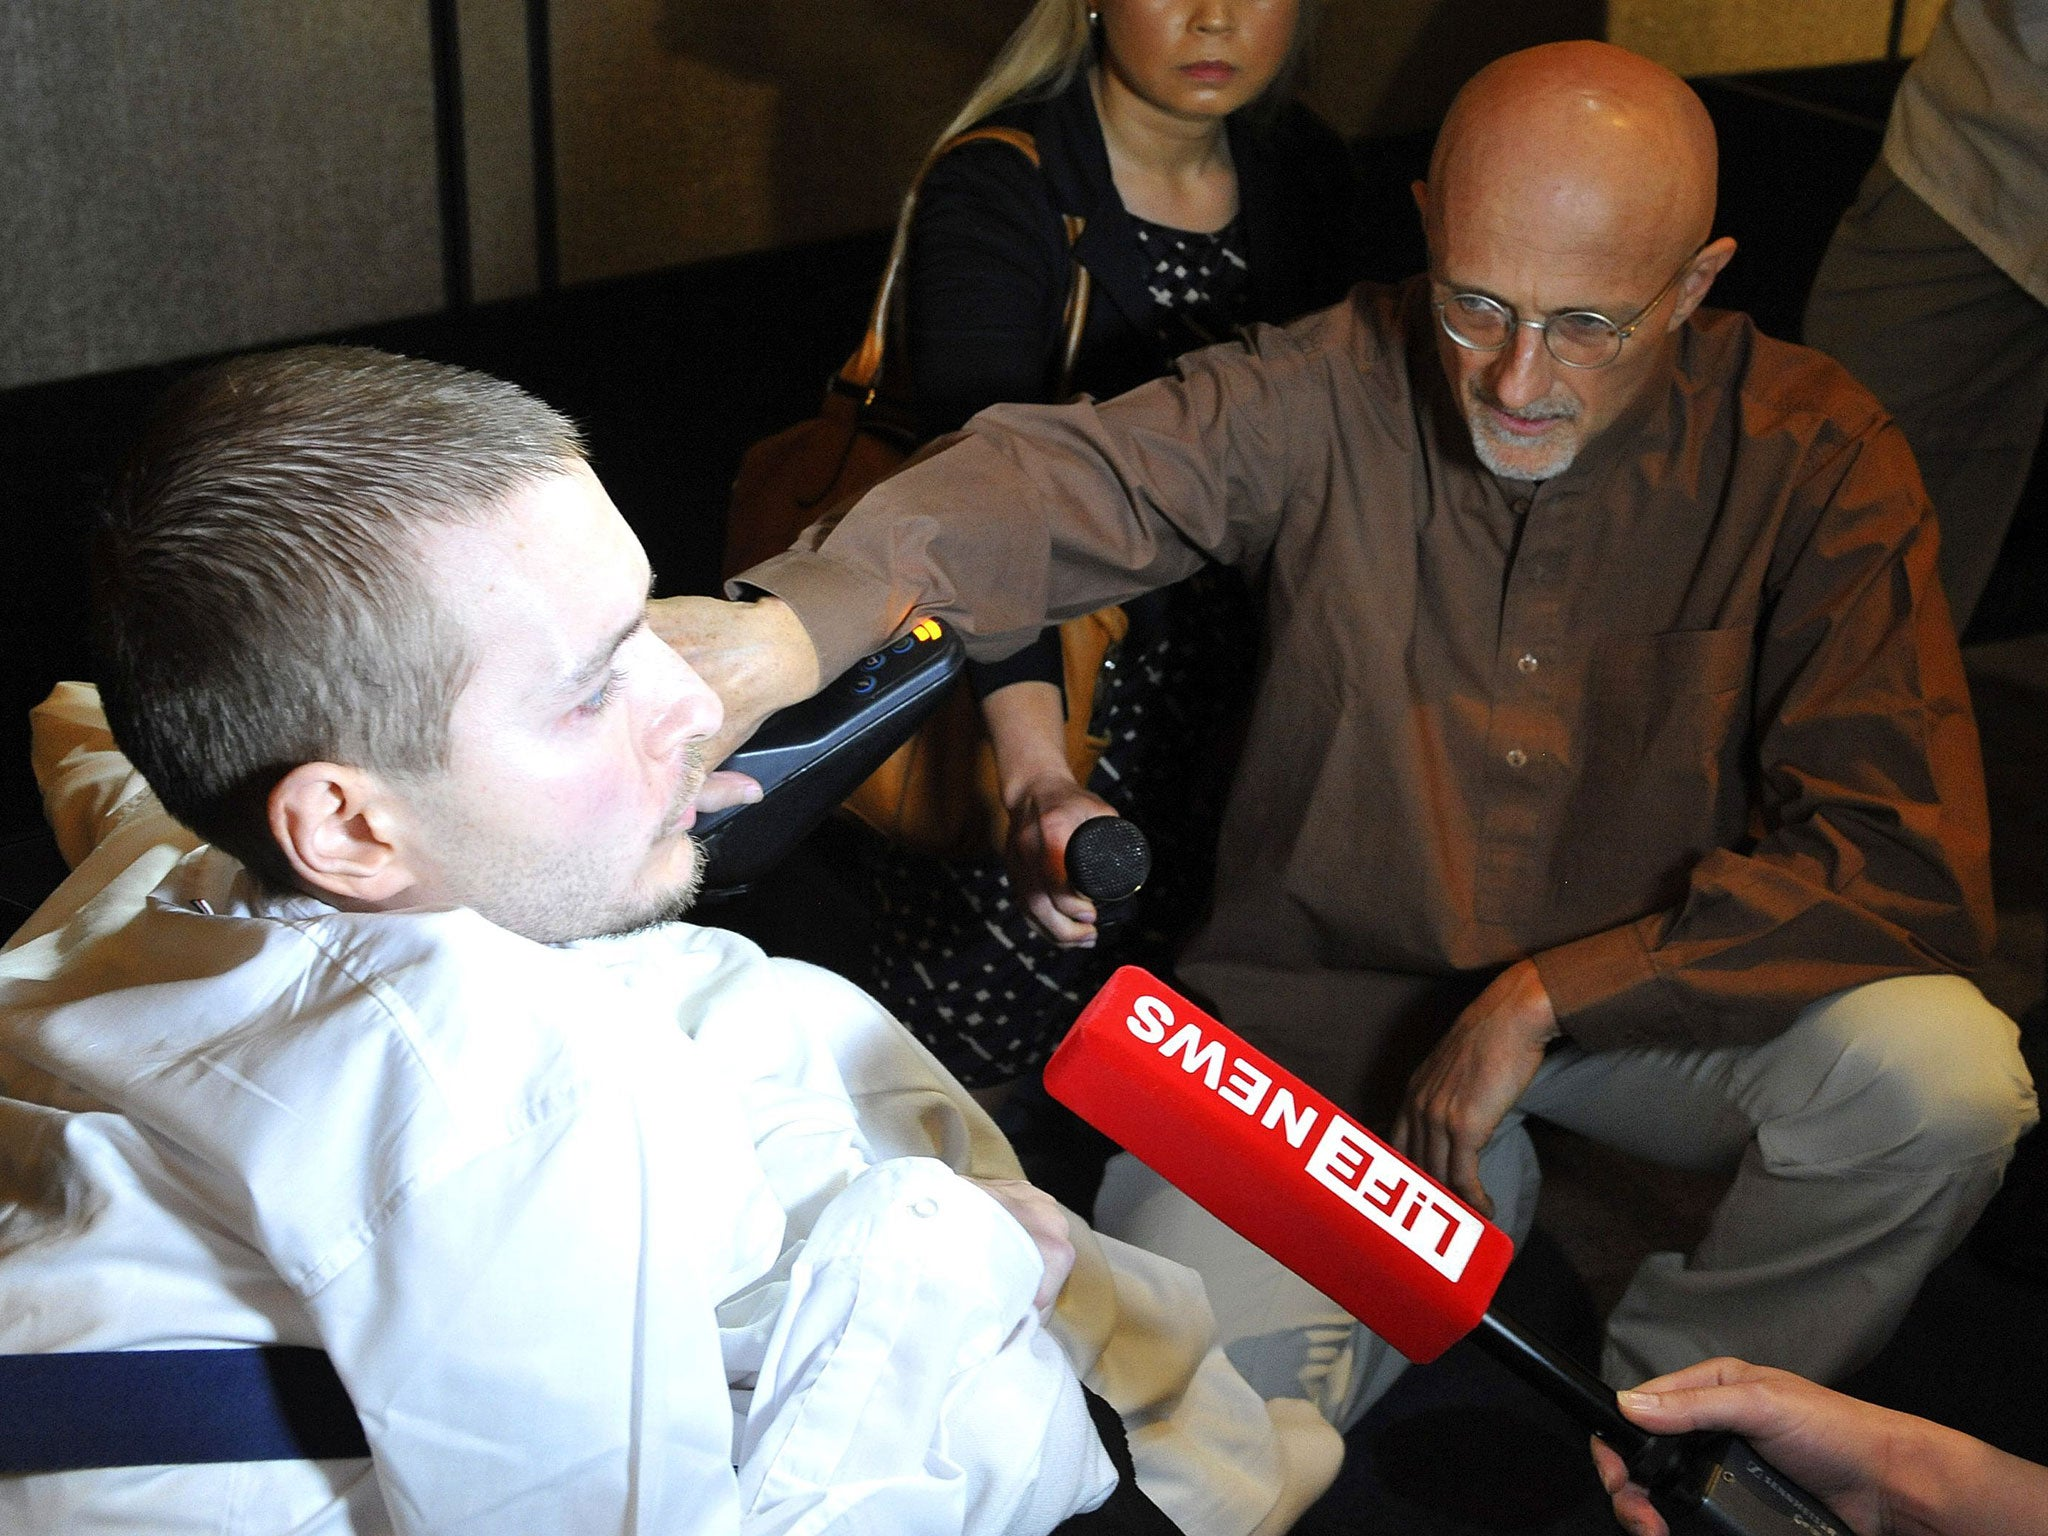 Science or science fiction? How an Italian doctor hopes to perform first human head transplant